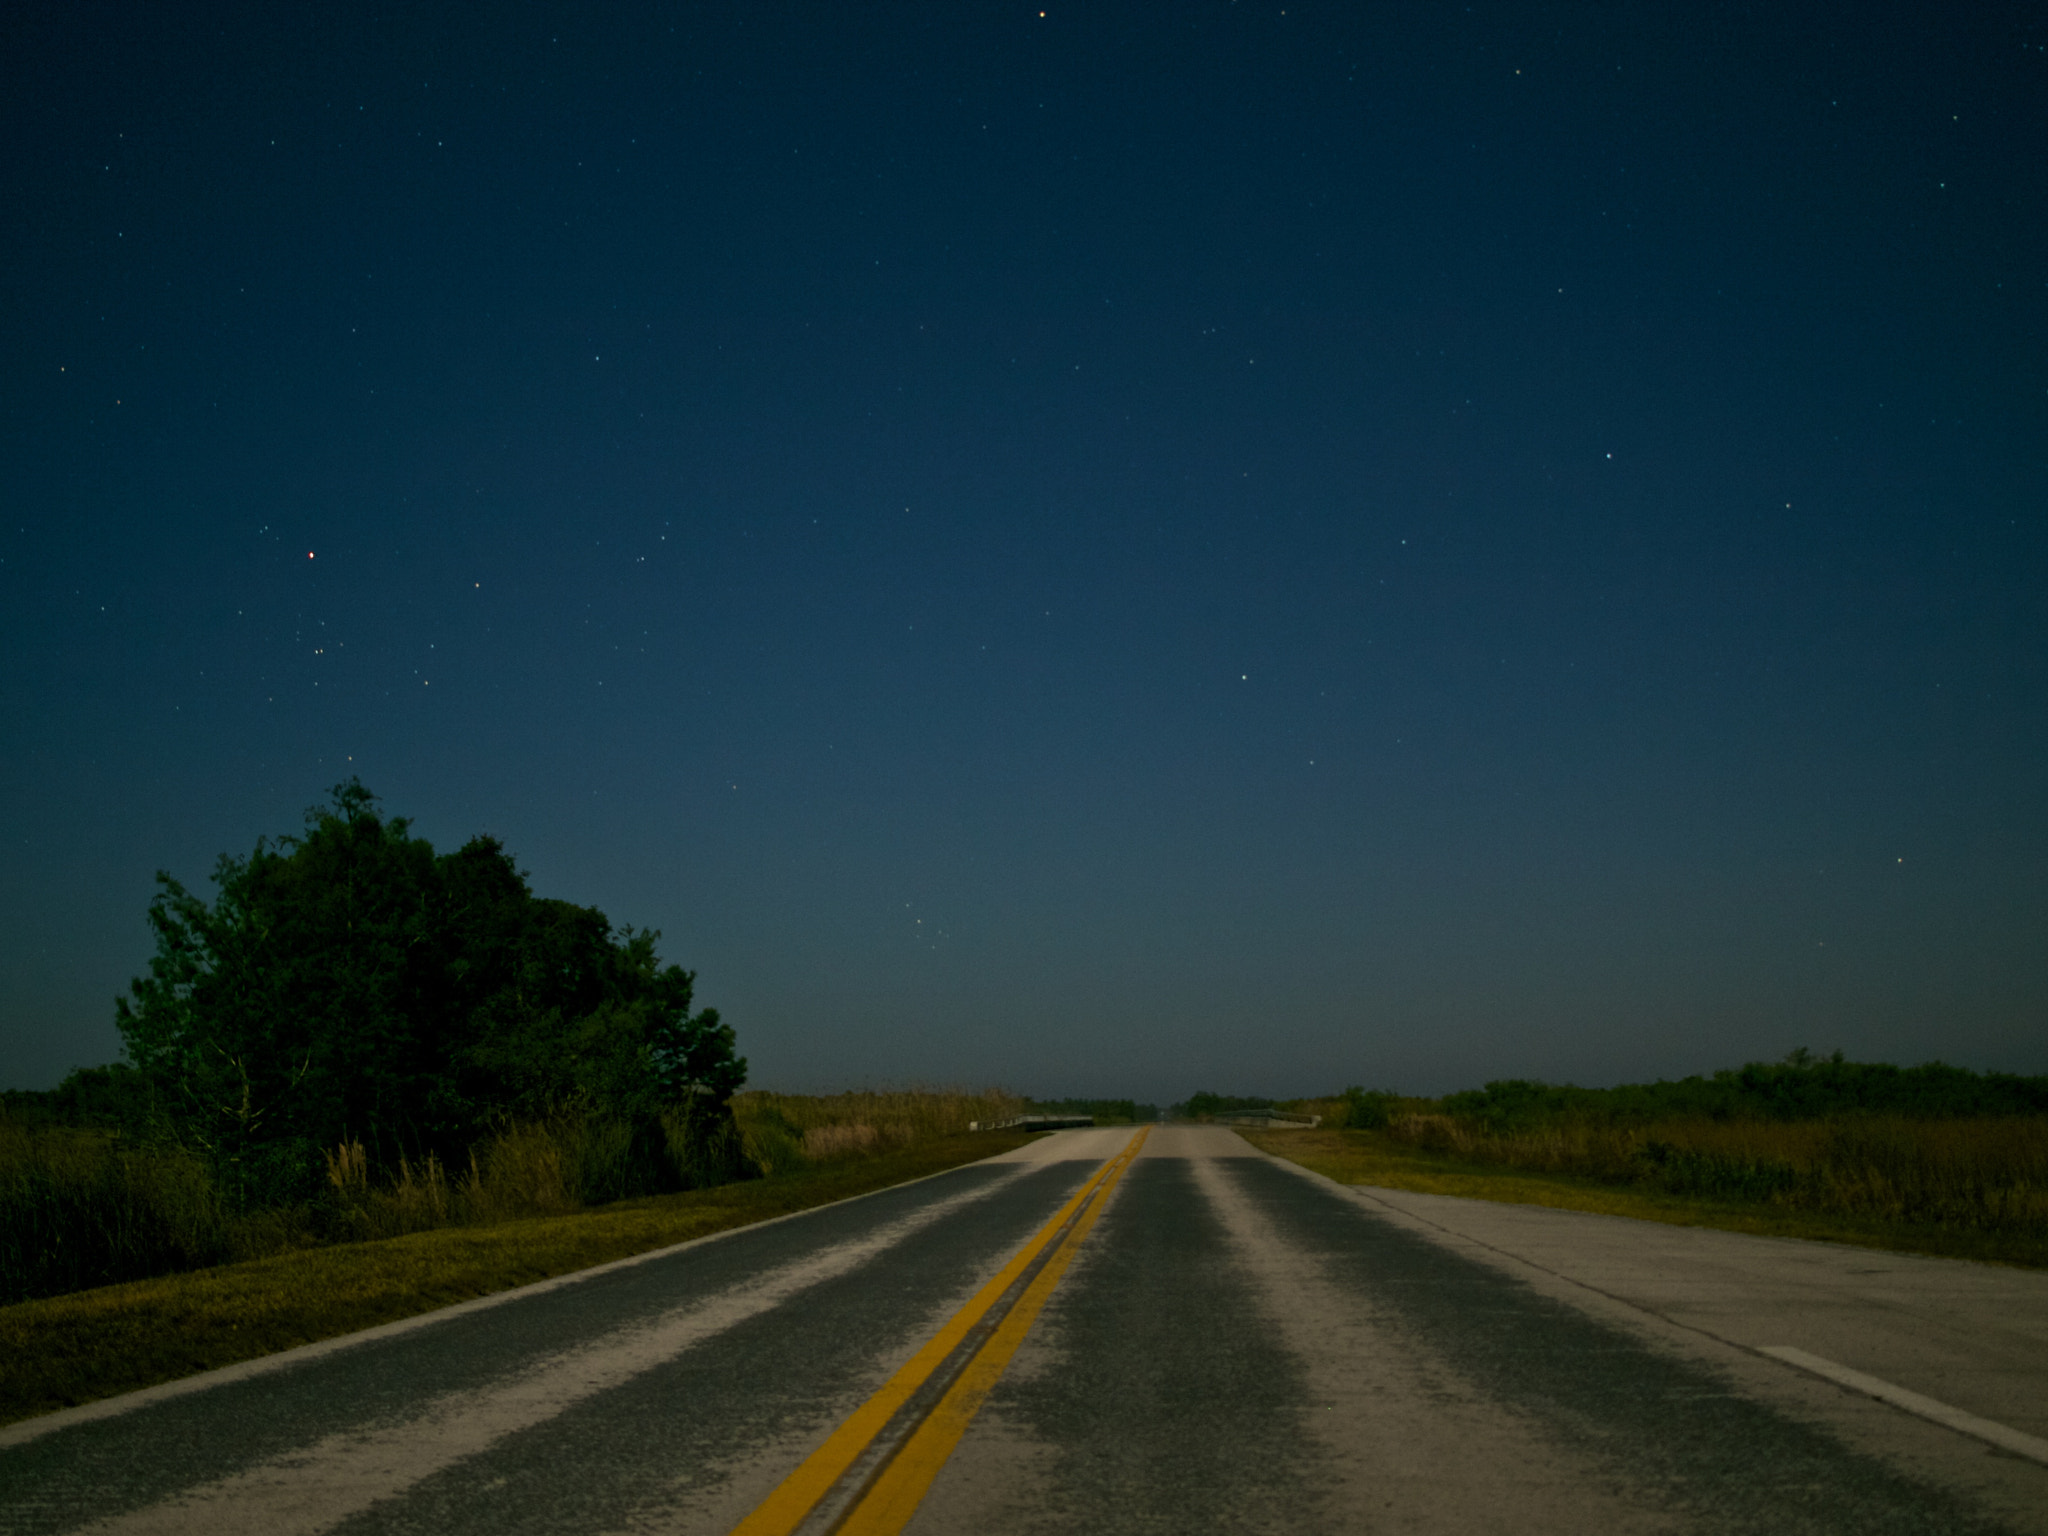 Photograph On a road to nowhere by Walter Ramirez on 500px